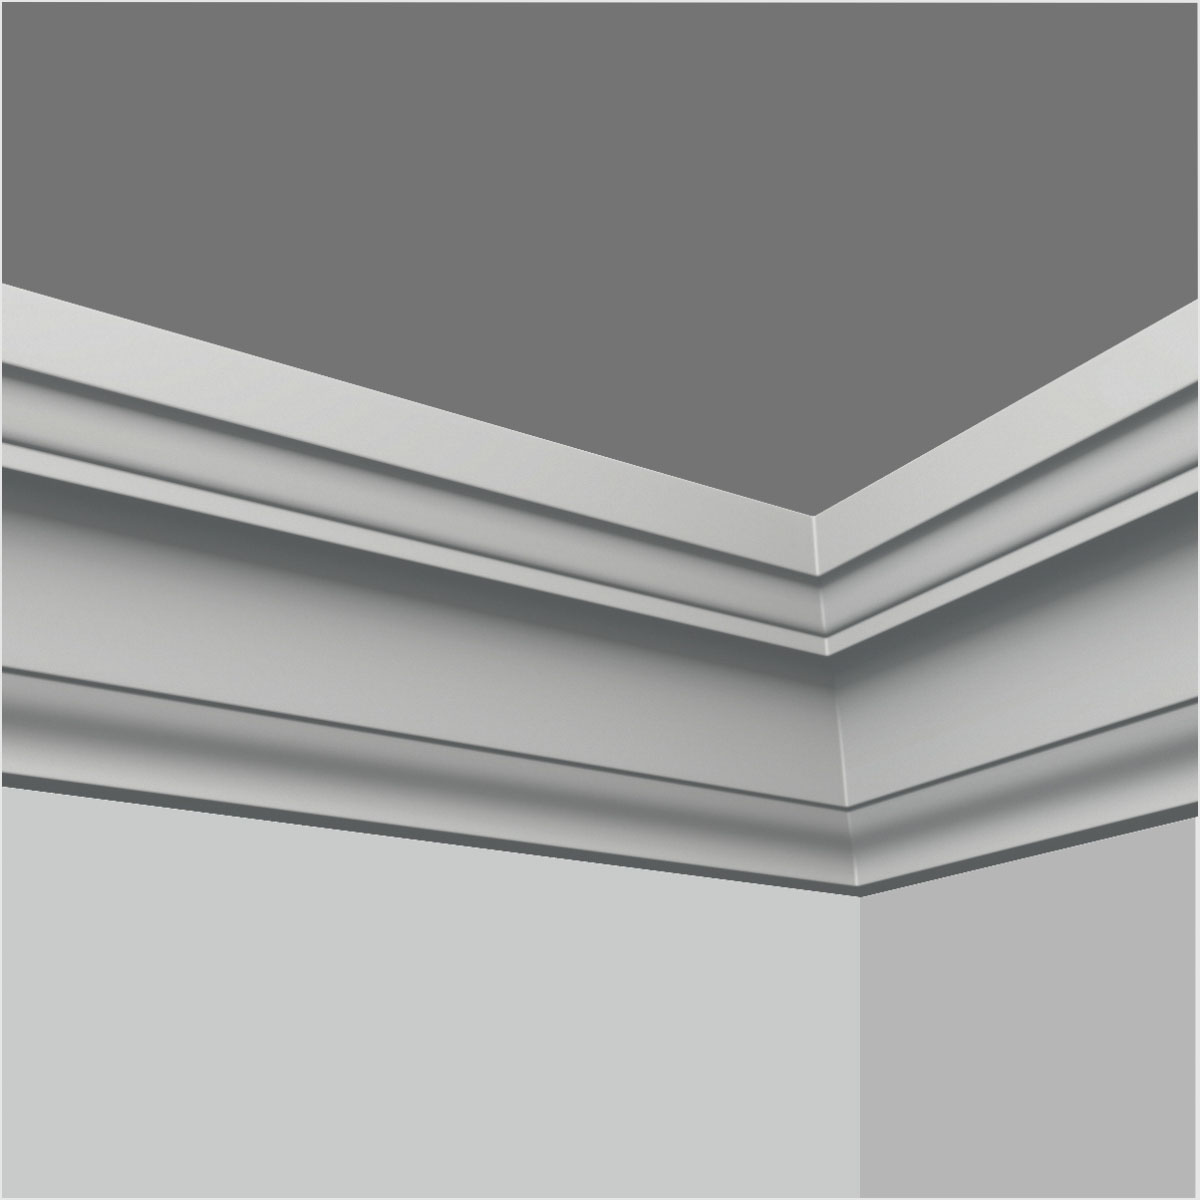 Polyurethane smooth crown moulding for sale